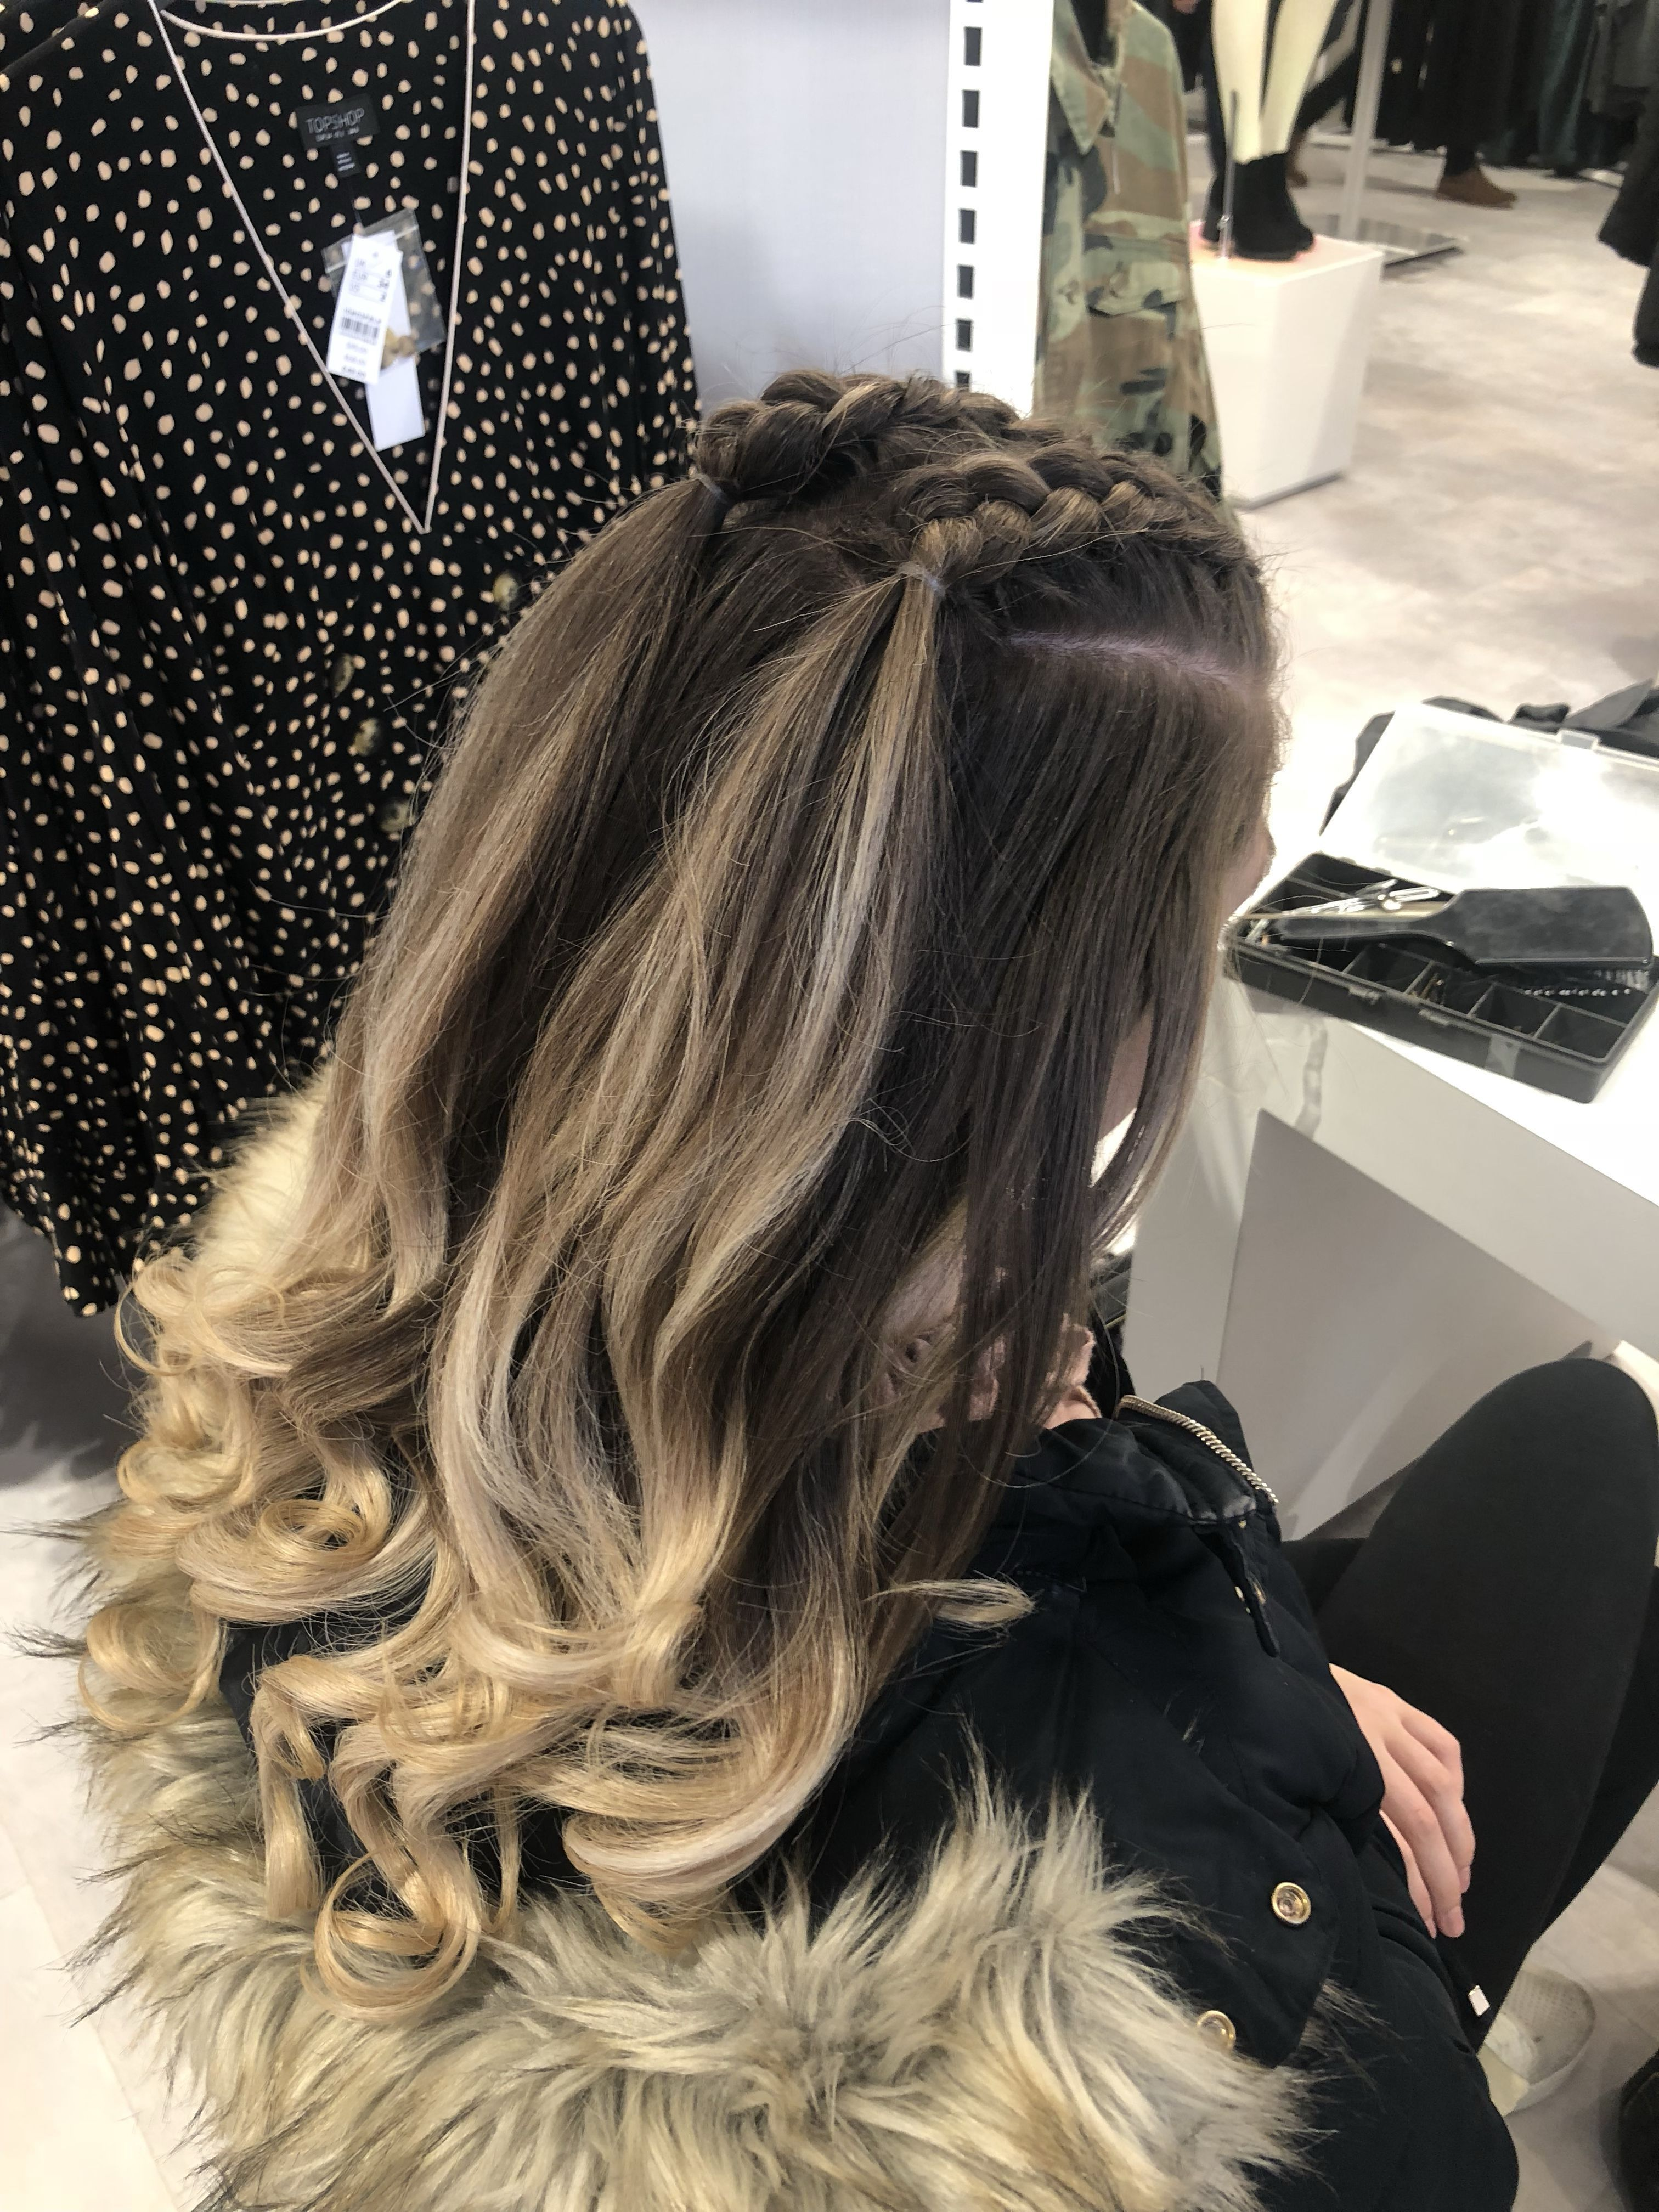 Blond hair, two small braids. Lose curls # small Braids with curls Half up, half down